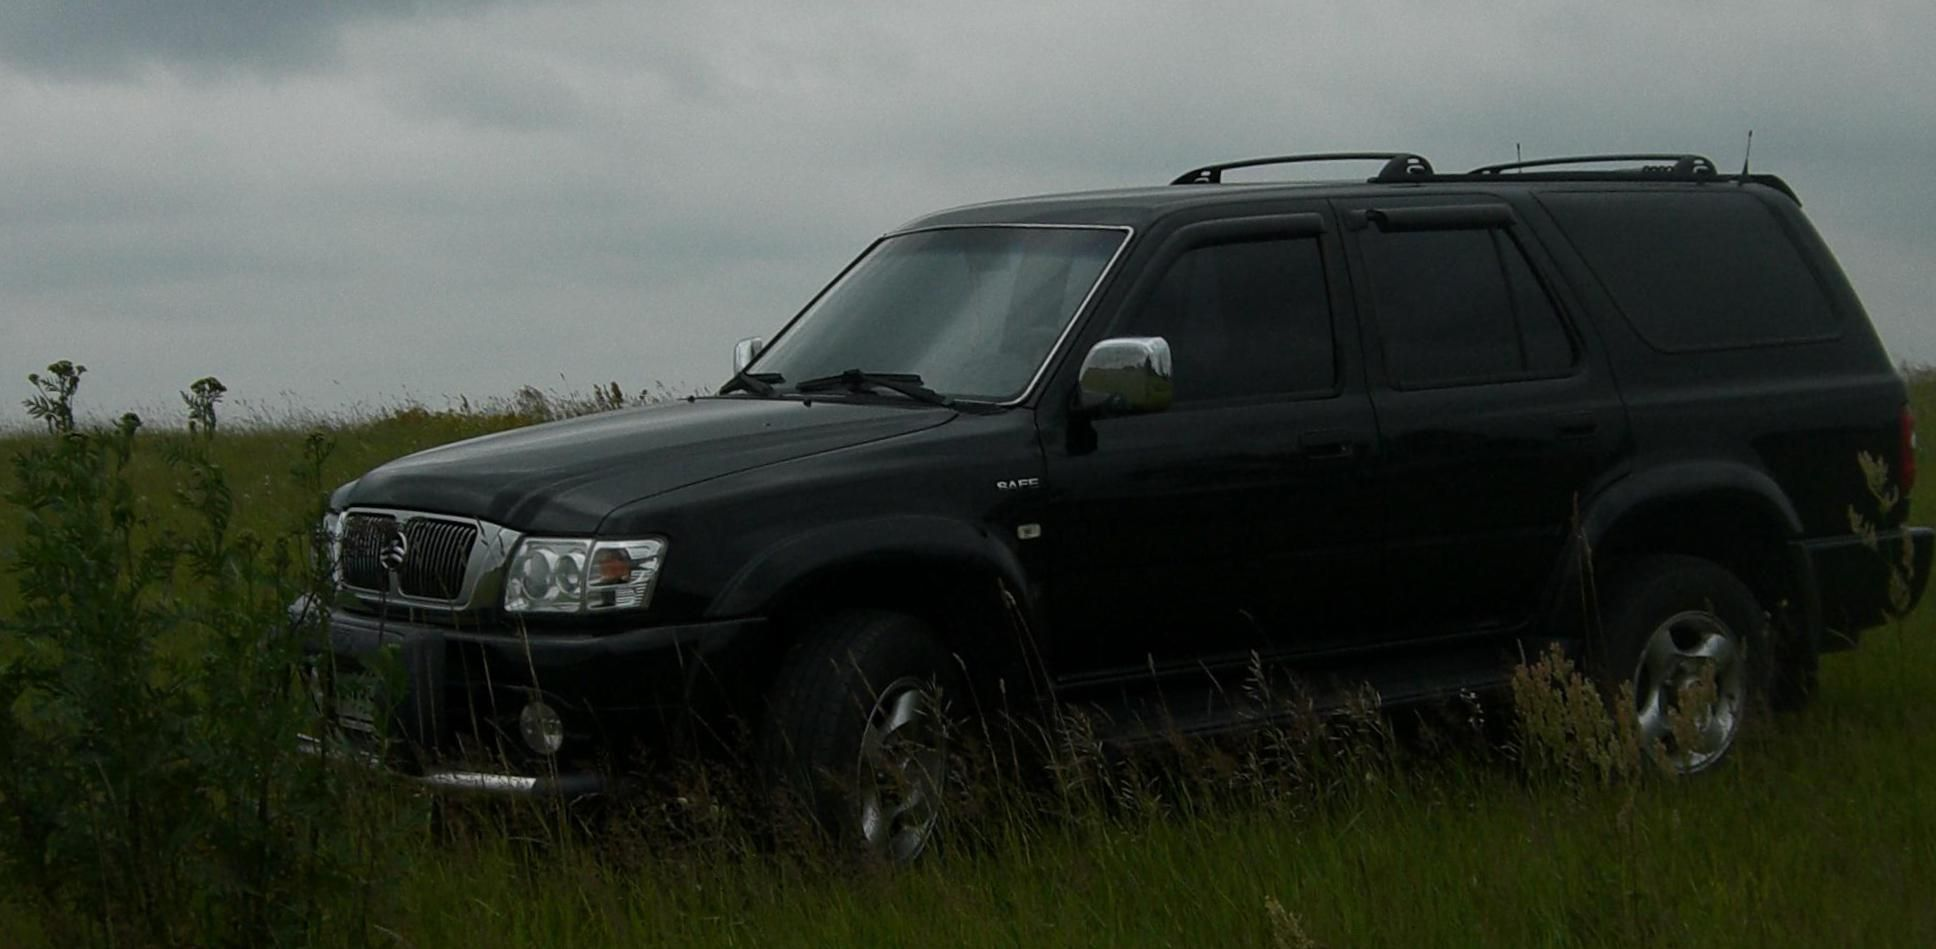 Safe Great Wall Specifications - http://autotras.com